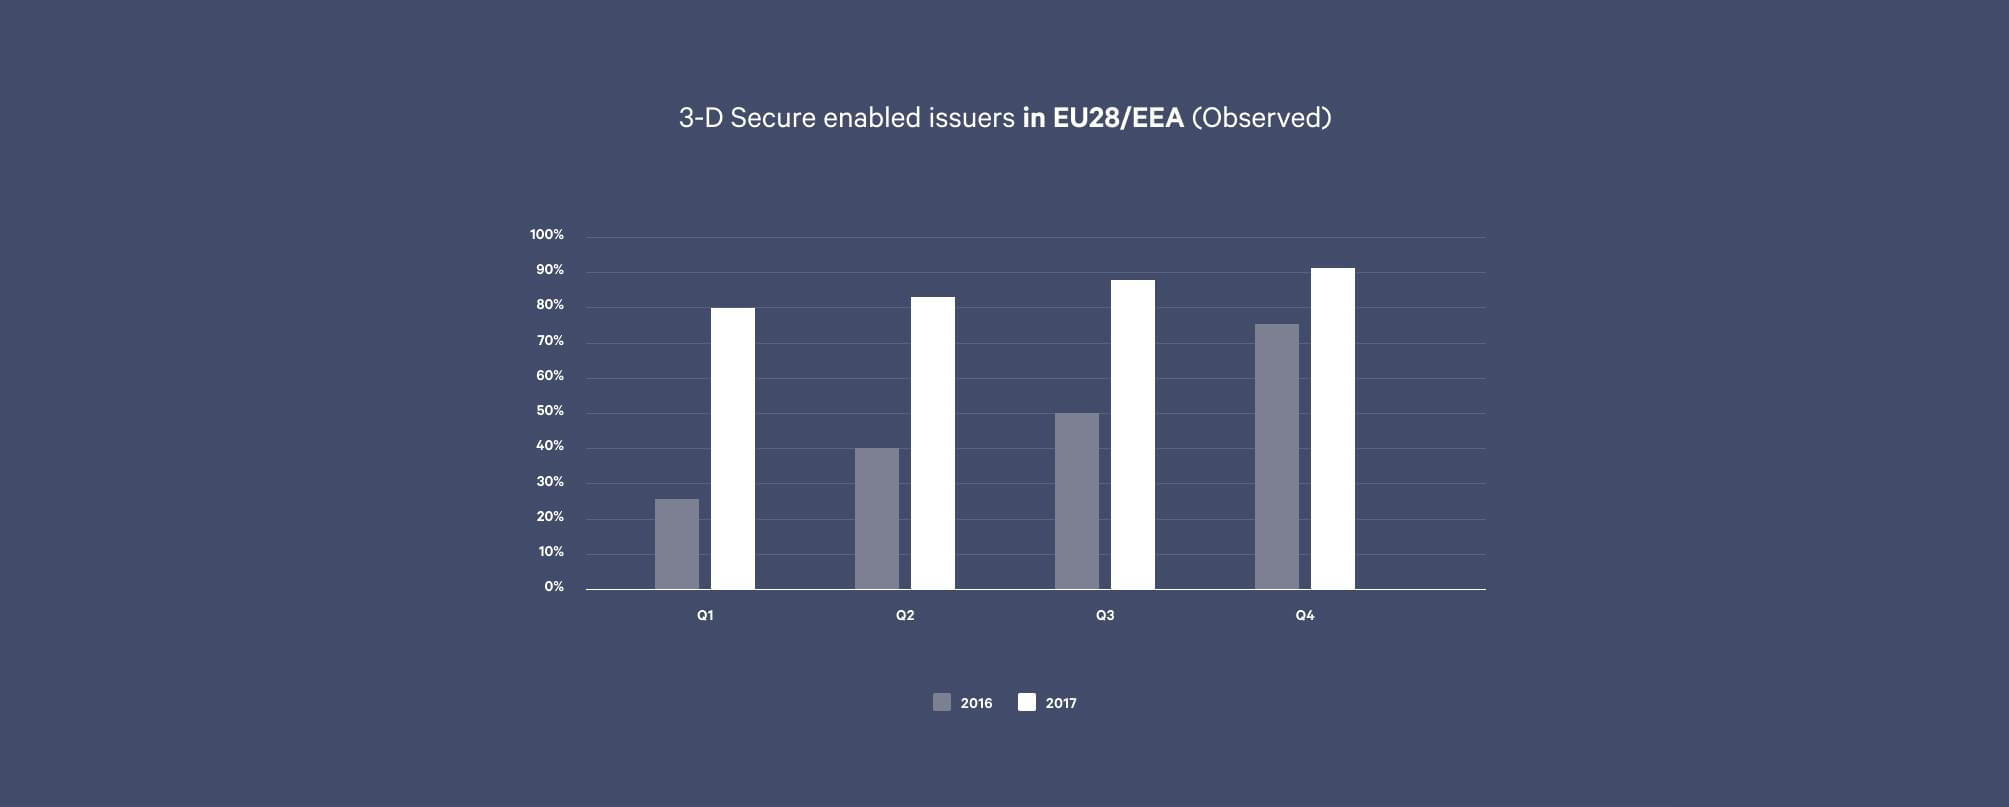 share of banks within the EU supporting 3-D Secure